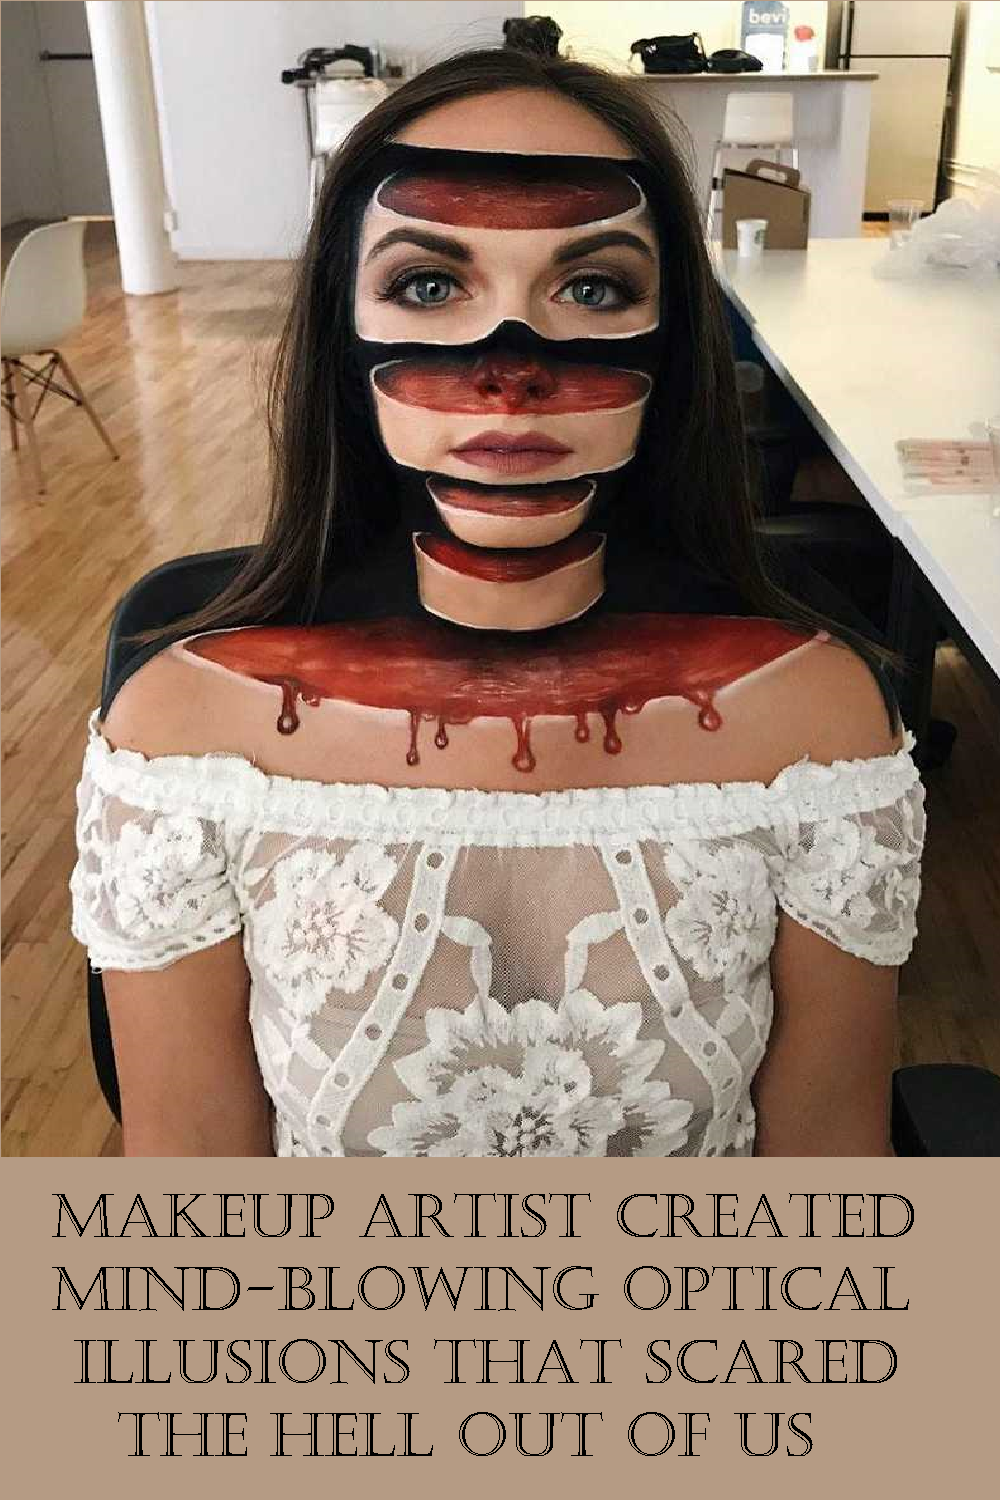 Makeup is an art that not everyone can master. It comes